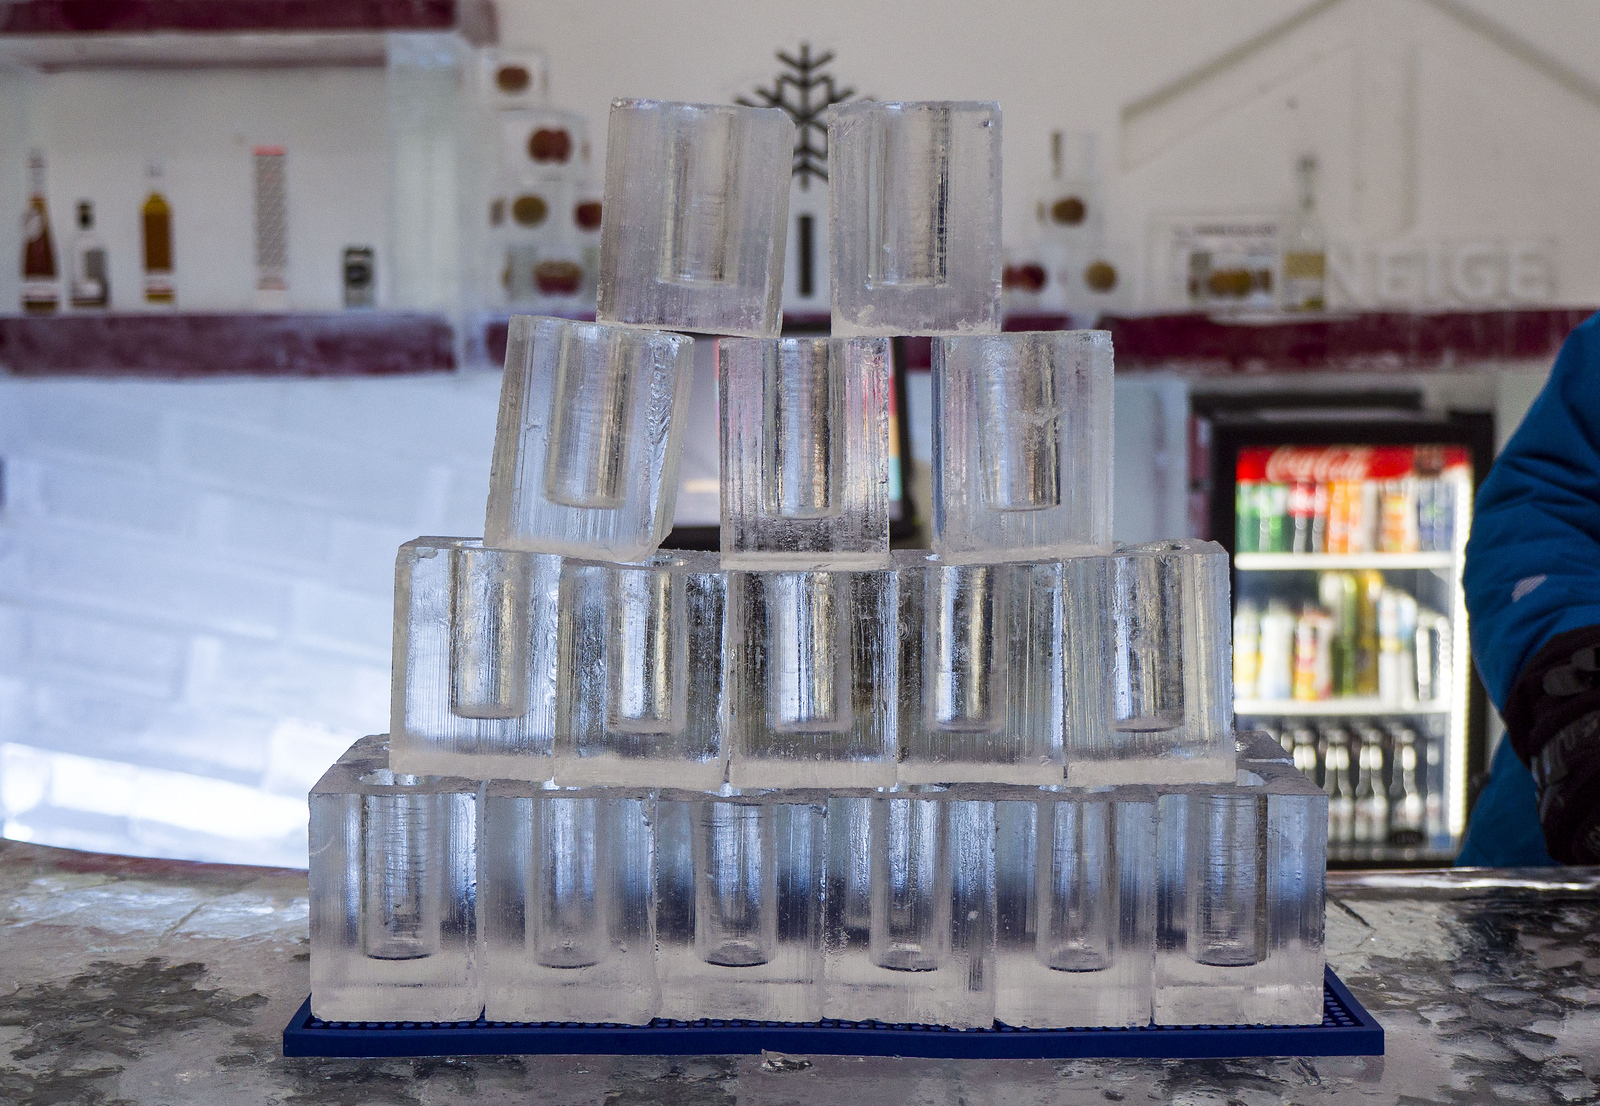 Ice Hotel Quebec: An Insider's Guide to Surviving the Night - glasses made of ice